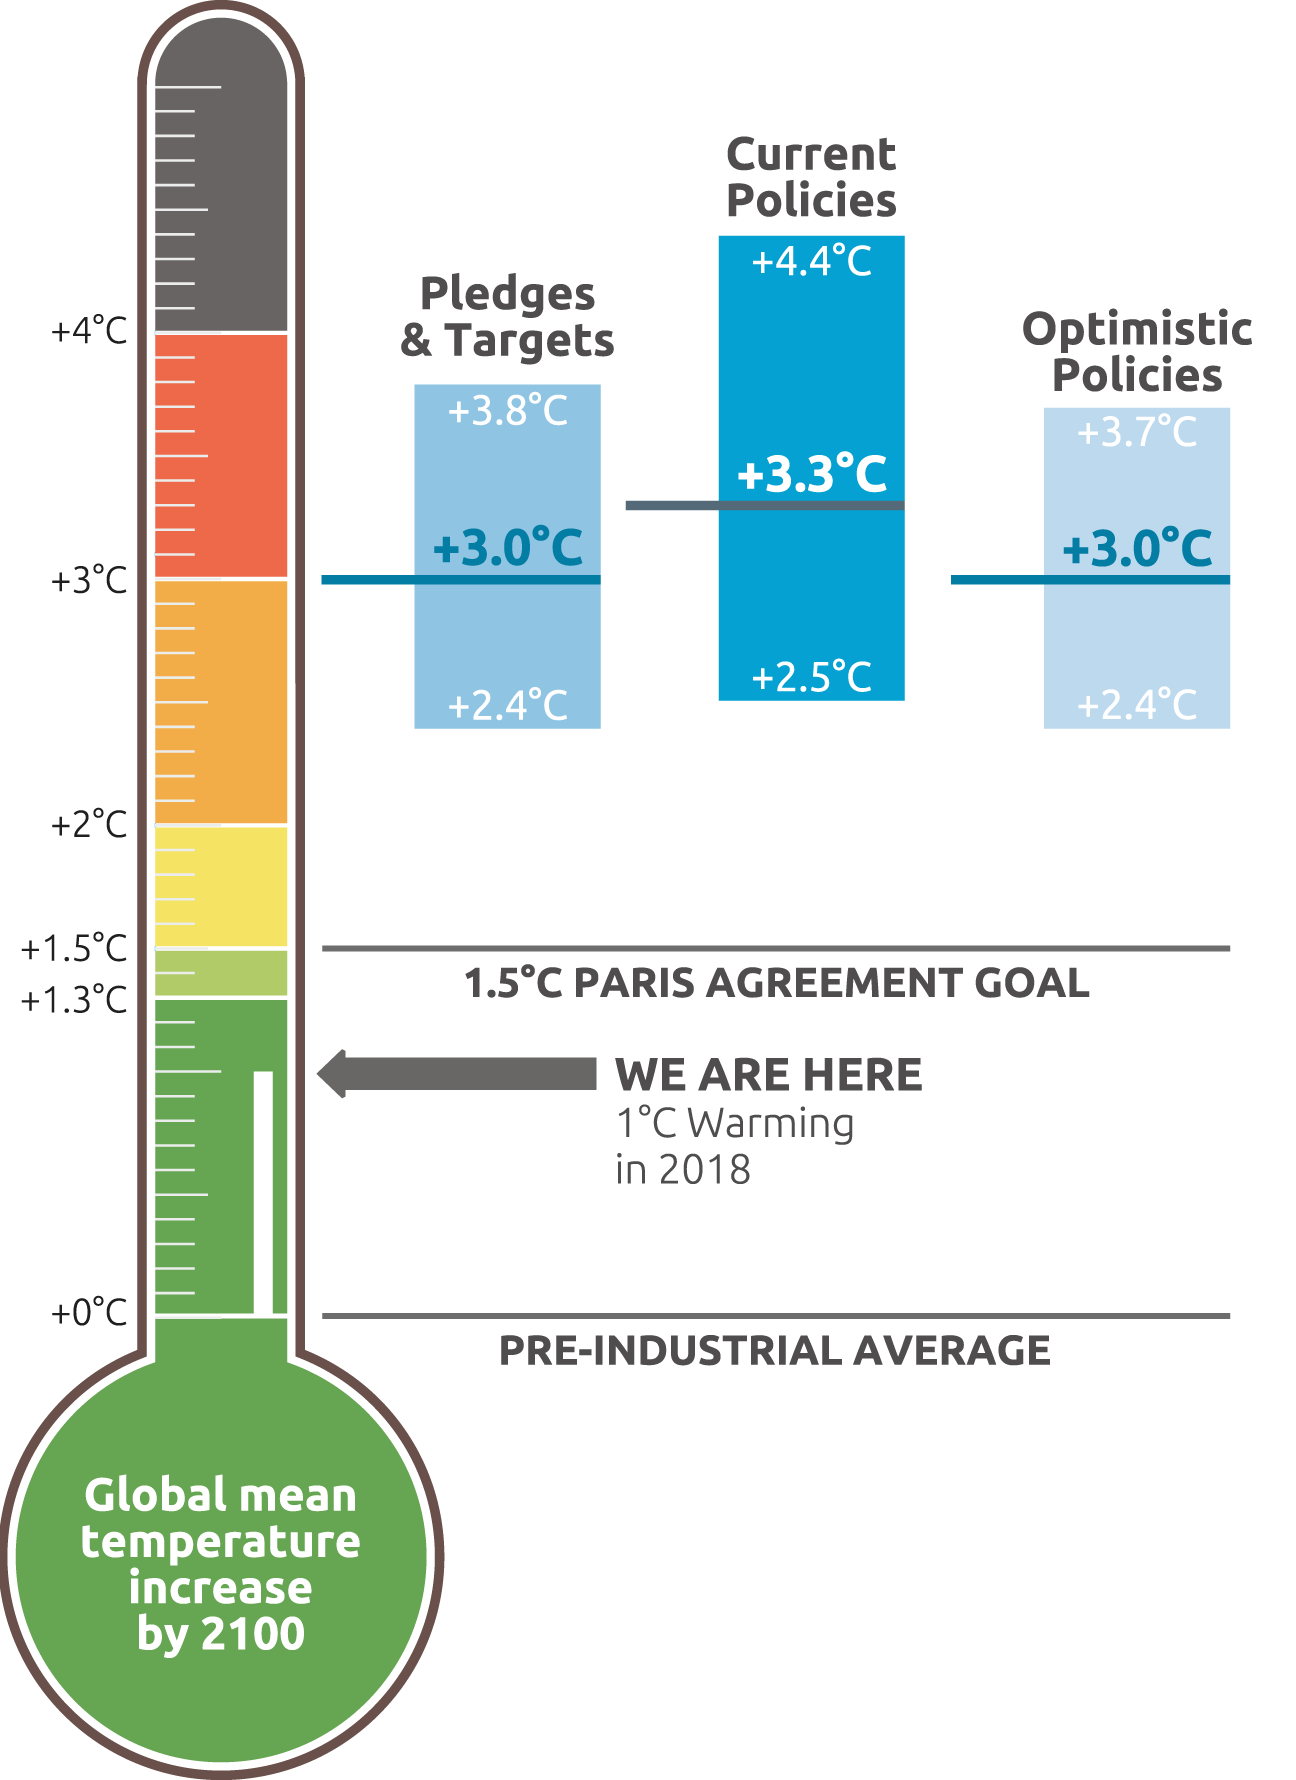 SOURCE: Climate Action Tracker